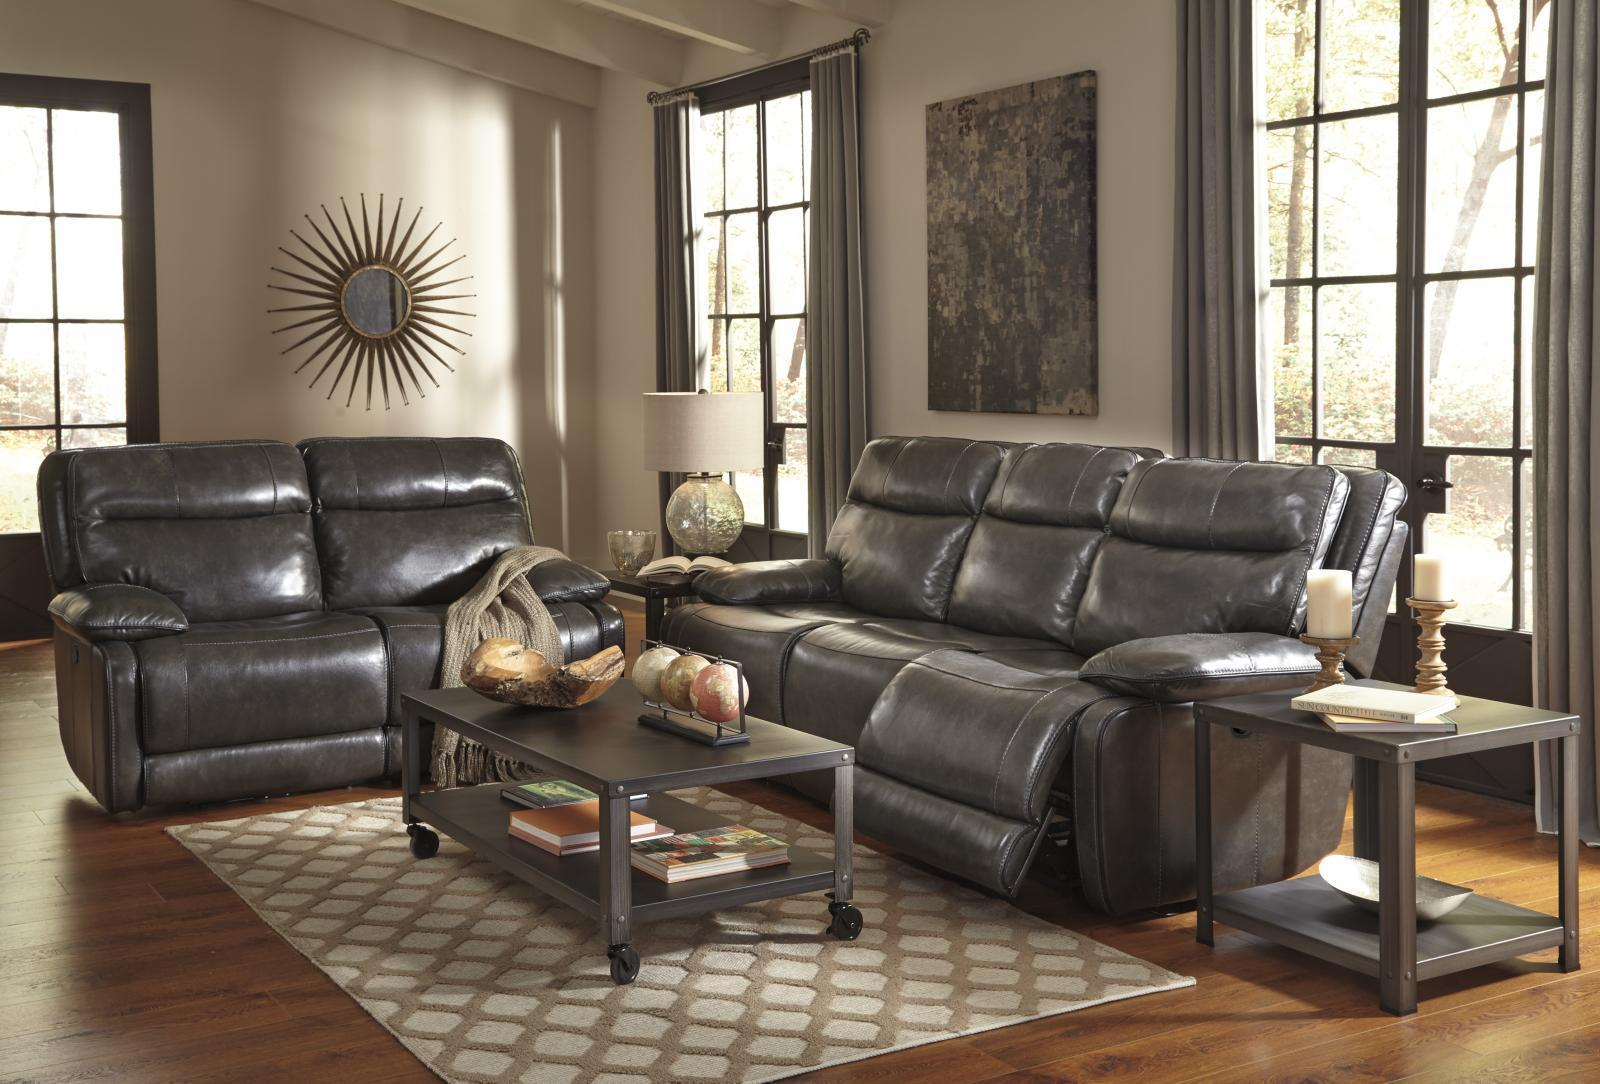 Ashley Palladum 2 Piece Living Room Set in Metal with Power Contemporary Style